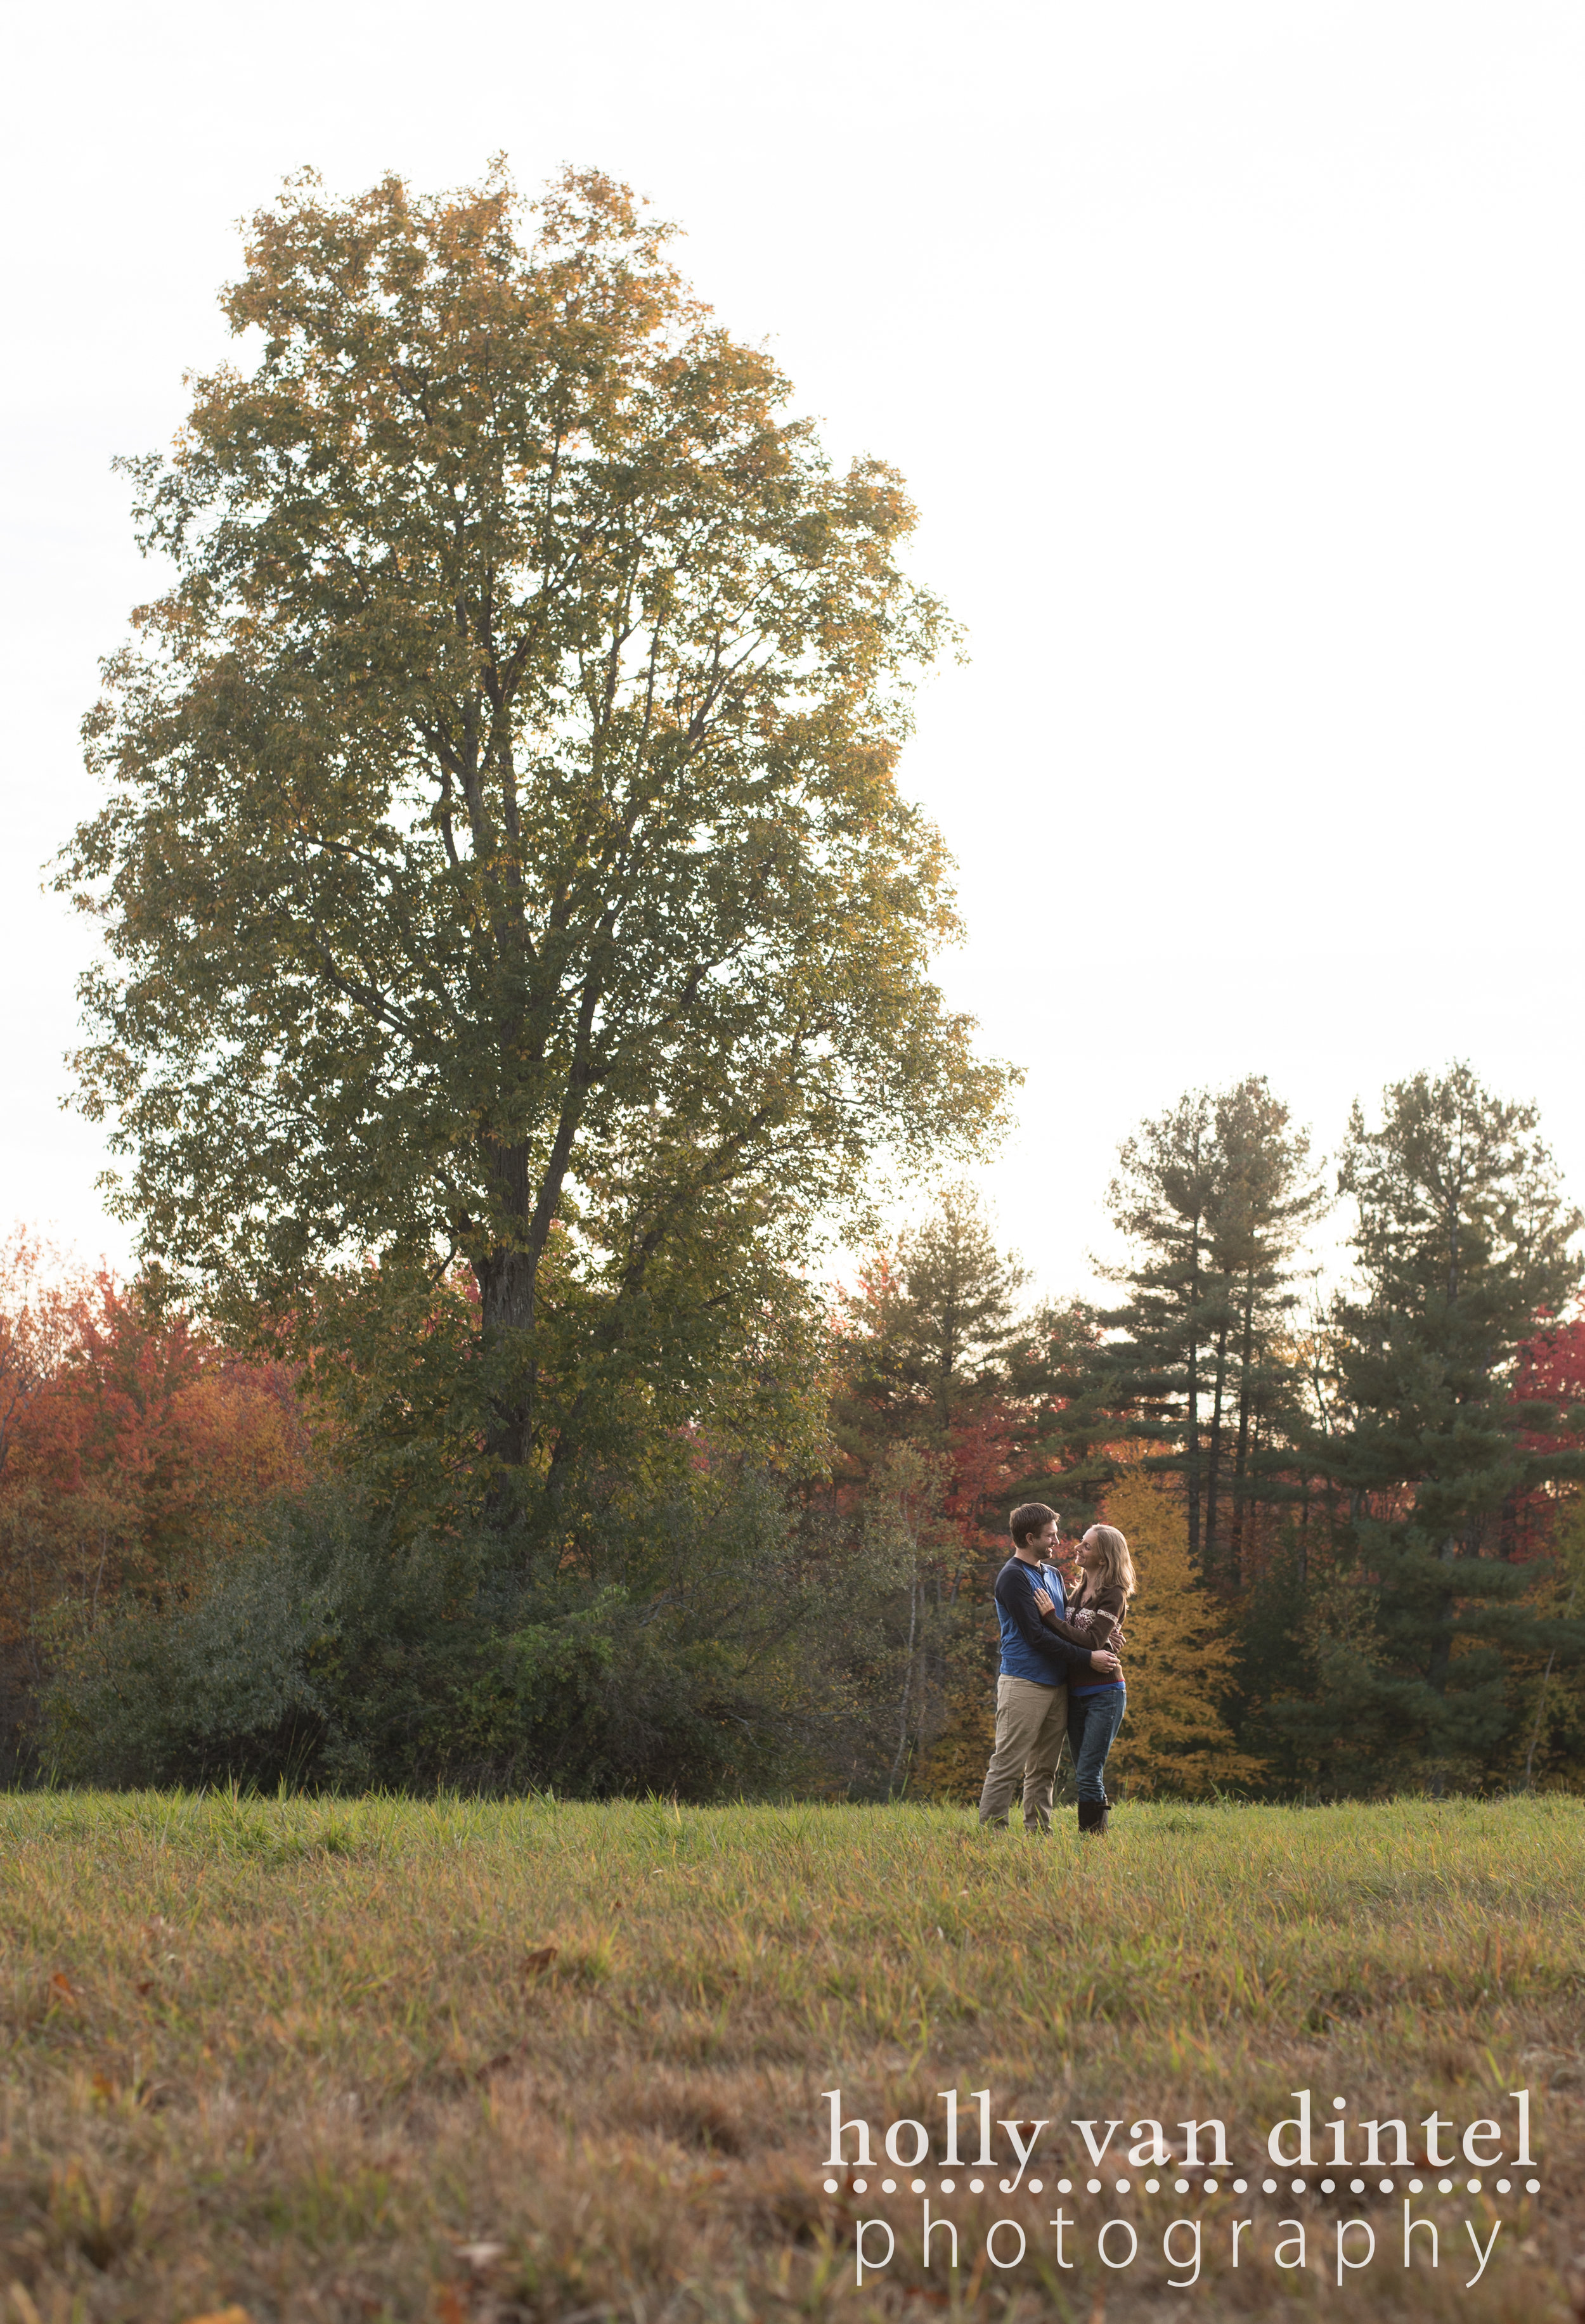 Engaged couple standing in field, hugging under tree